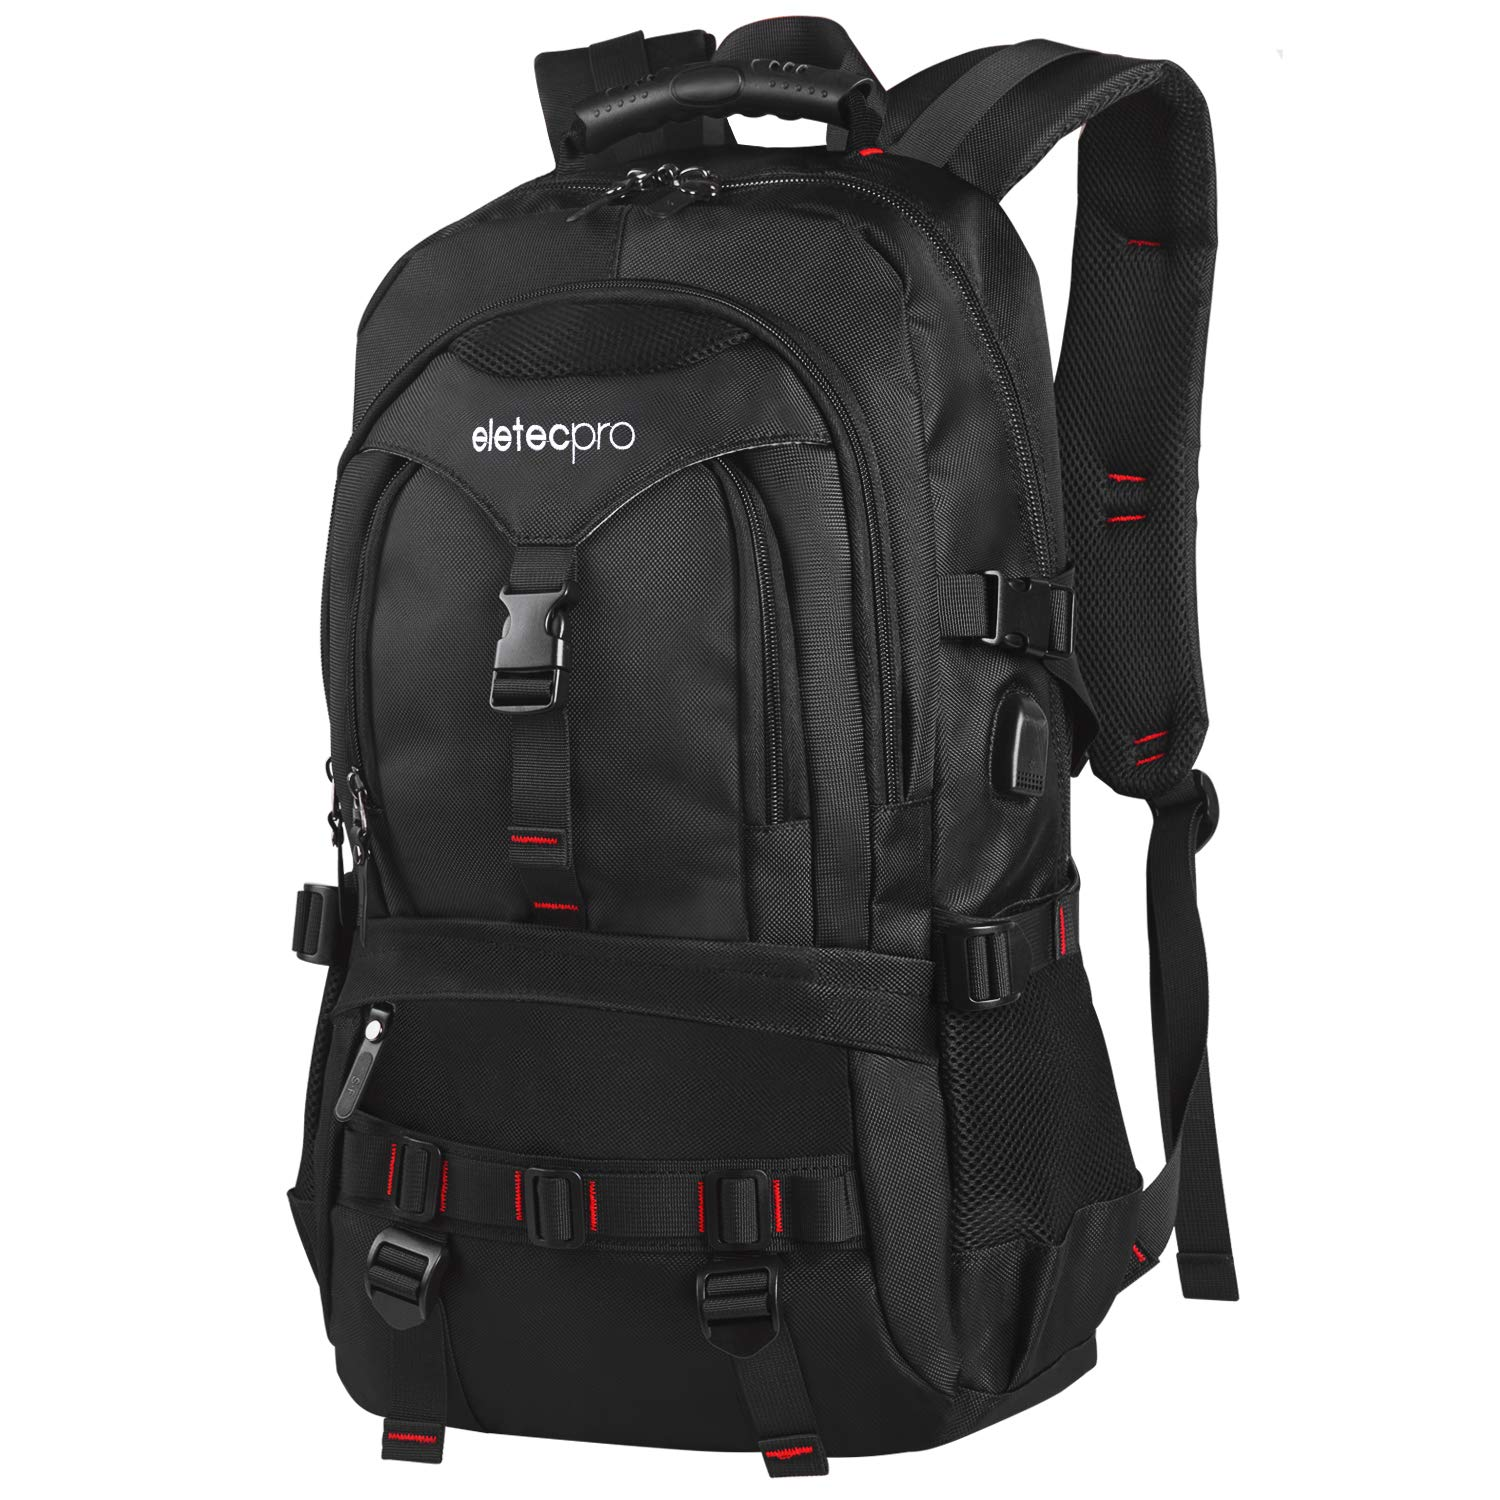 EletecPro Unisex 17.3 Inch Waterproof Laptop Backpack with USB Charging Port Durable Travel Backpack with Contains Multi Function Pockets for Women Men Black